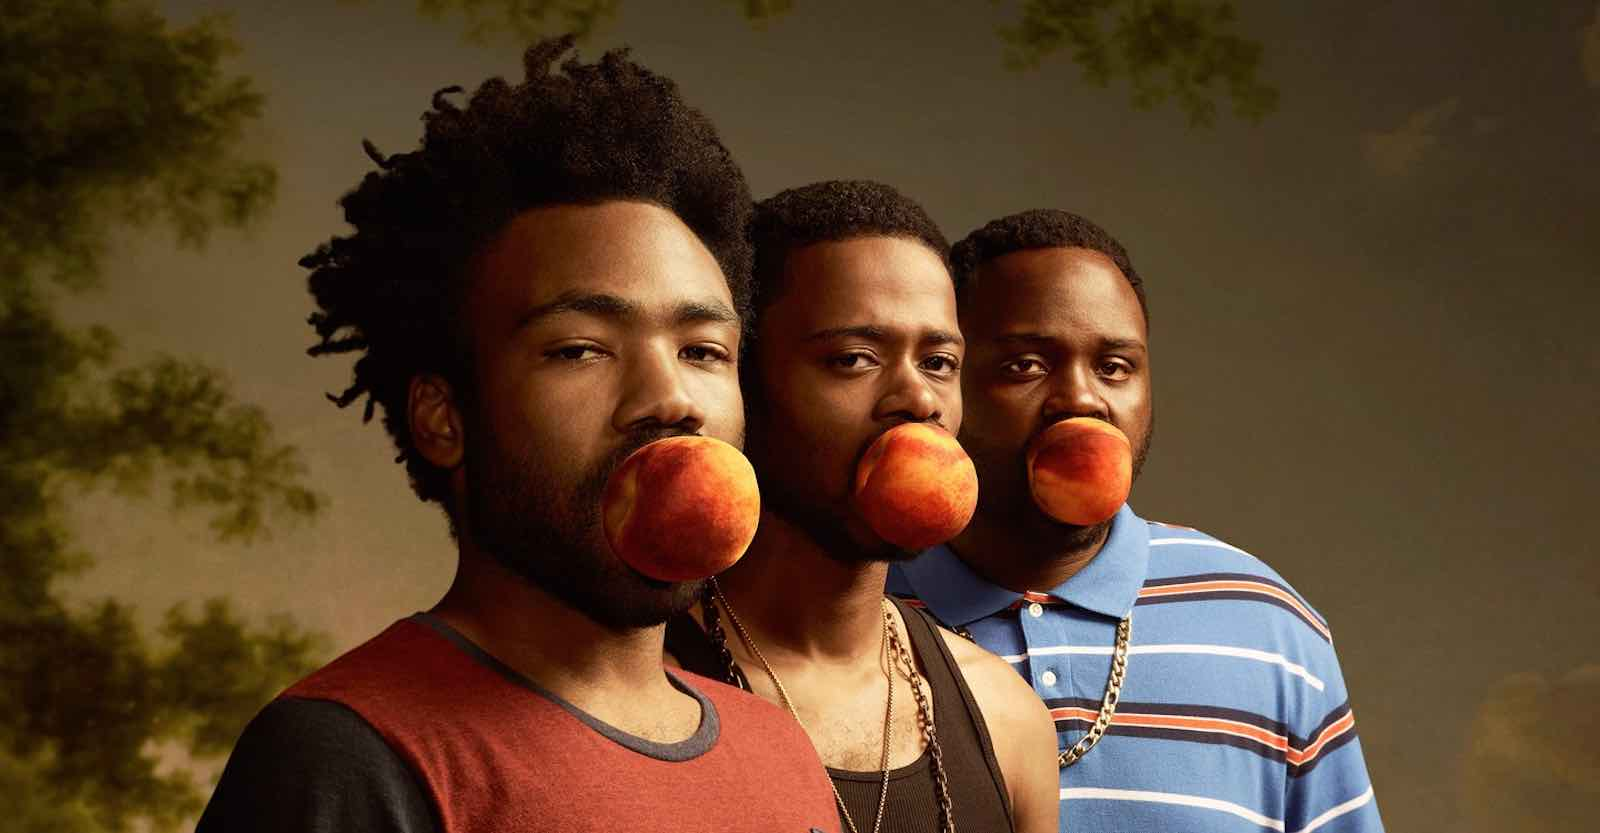 photo of Atlanta which is a new show available on Binge